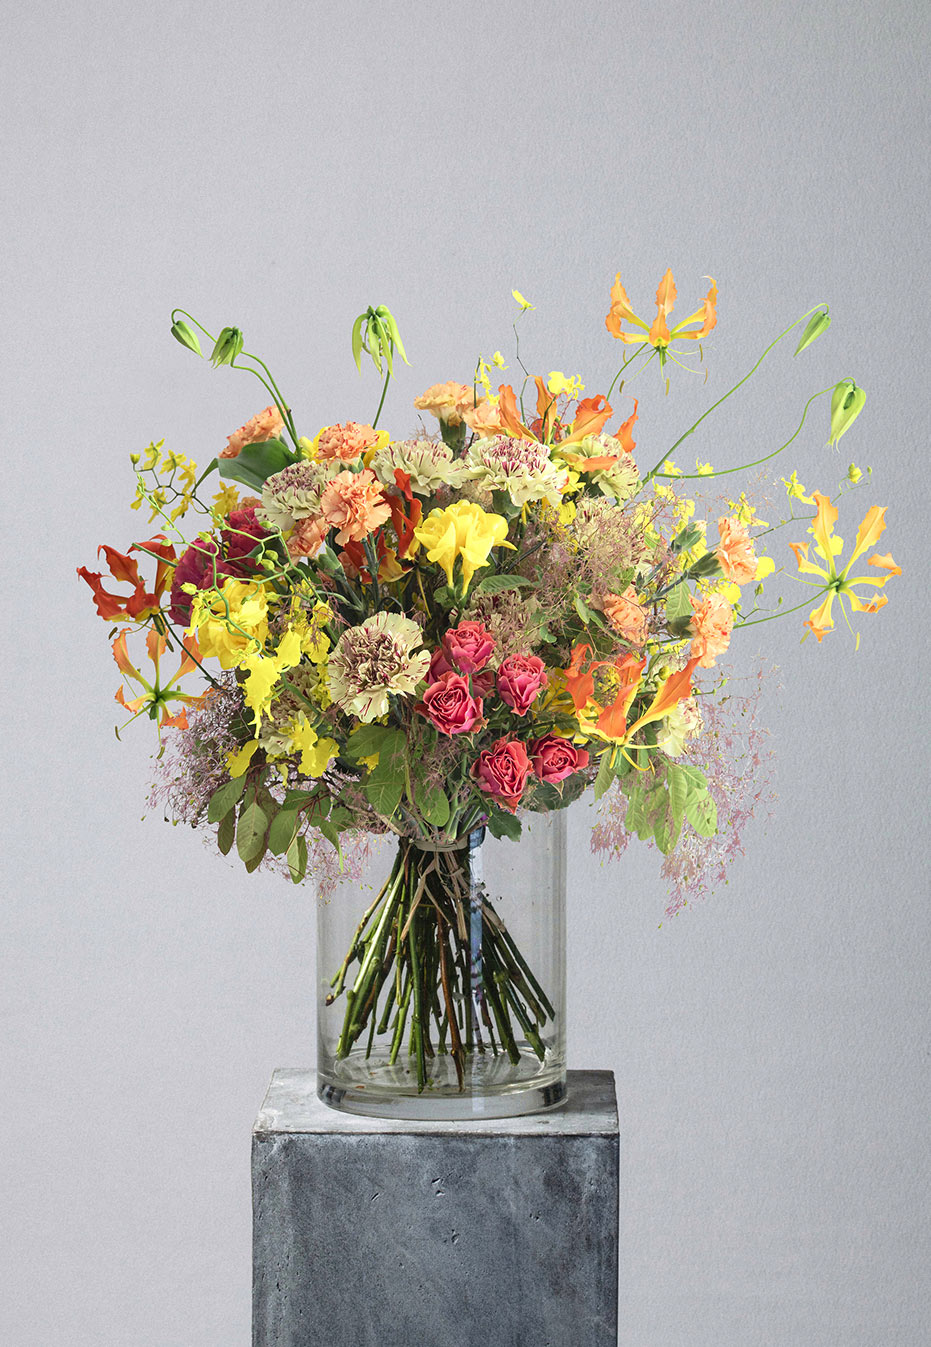 flower bouquet of carnation and gloriosa by flannel flowers